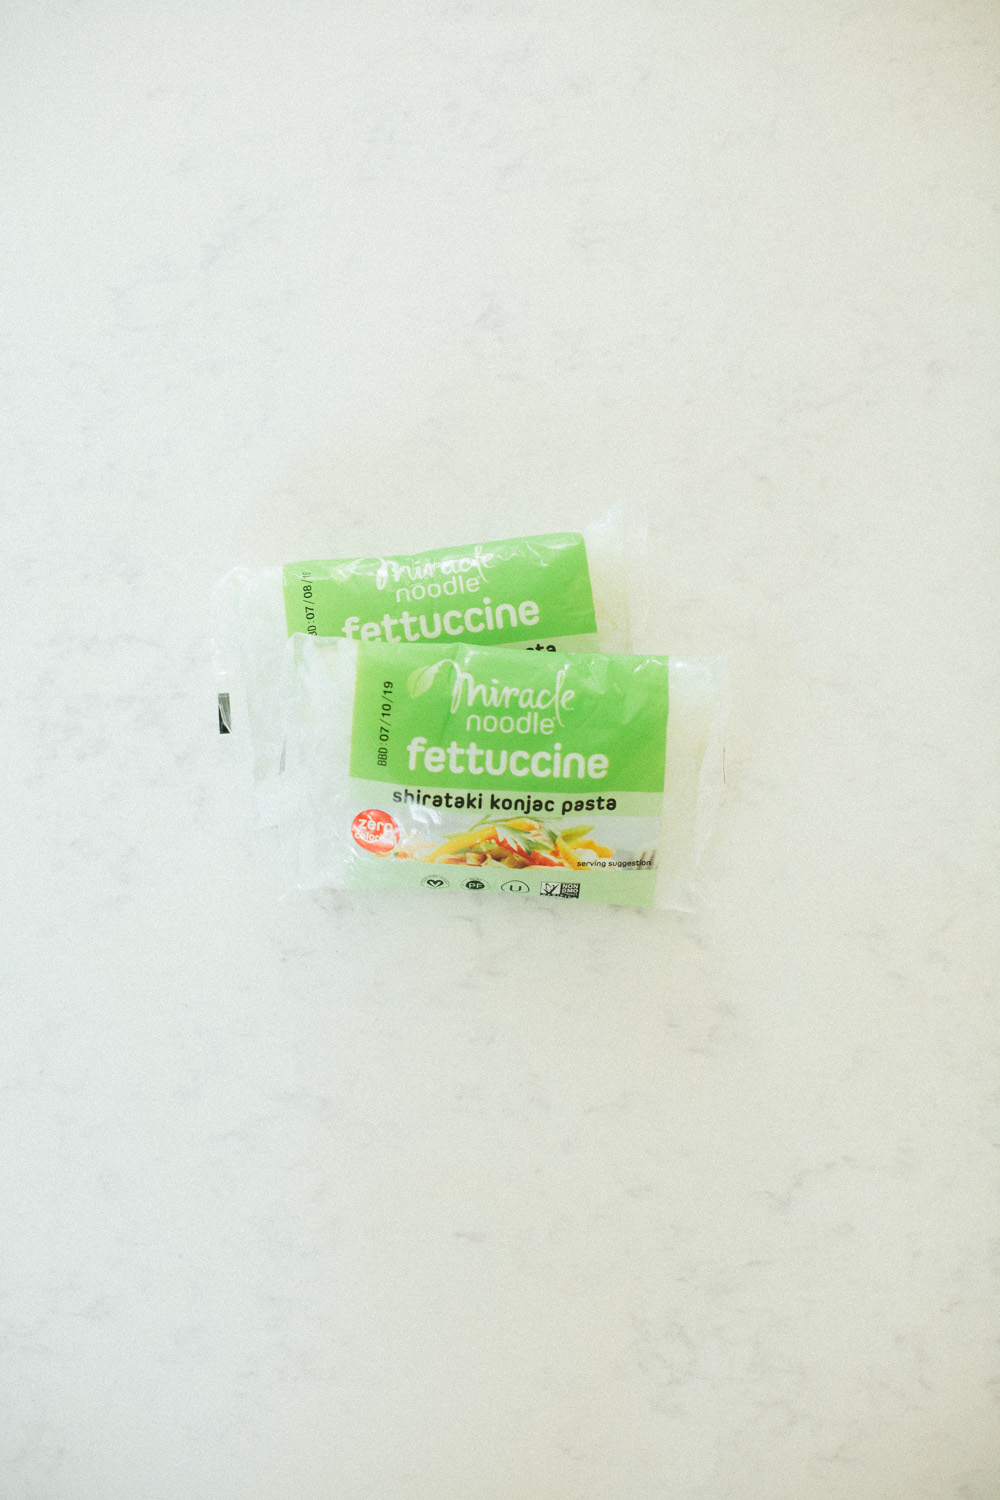 Shirataki miracle noodles, also known as konjac pasta, made by the Miracle Noodles brand